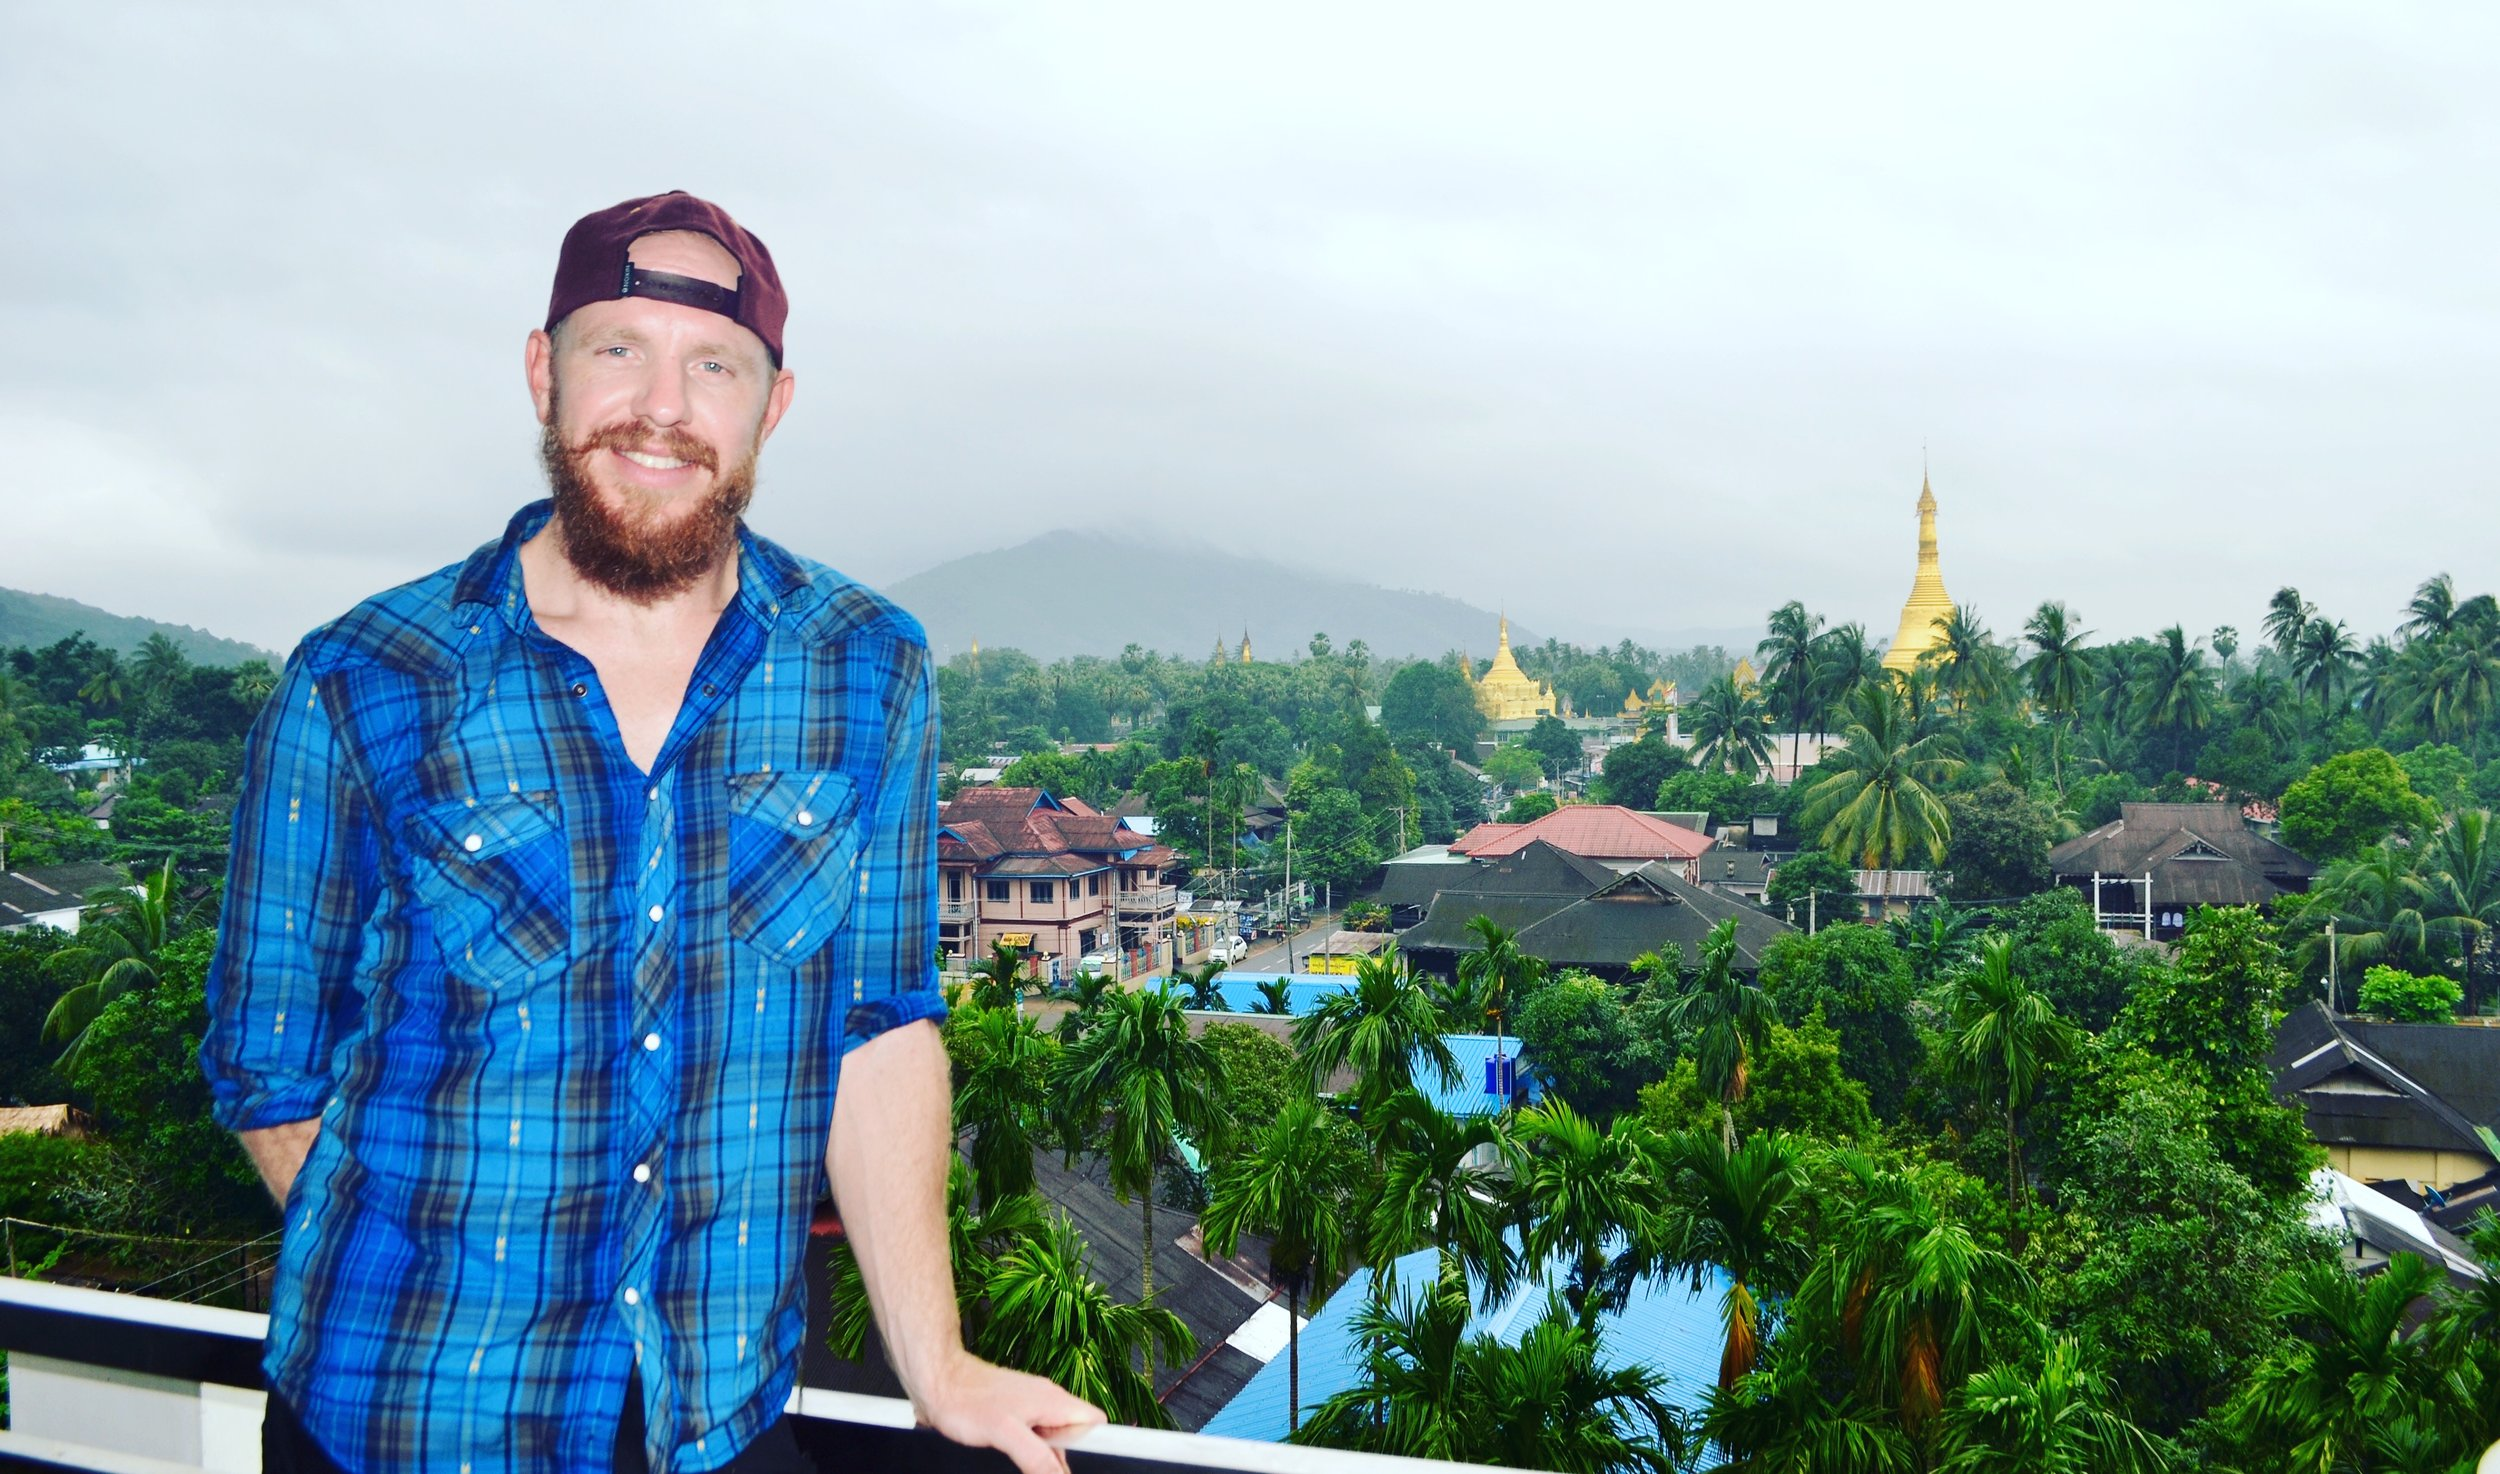 The view from the hotel in the small village of Thaton